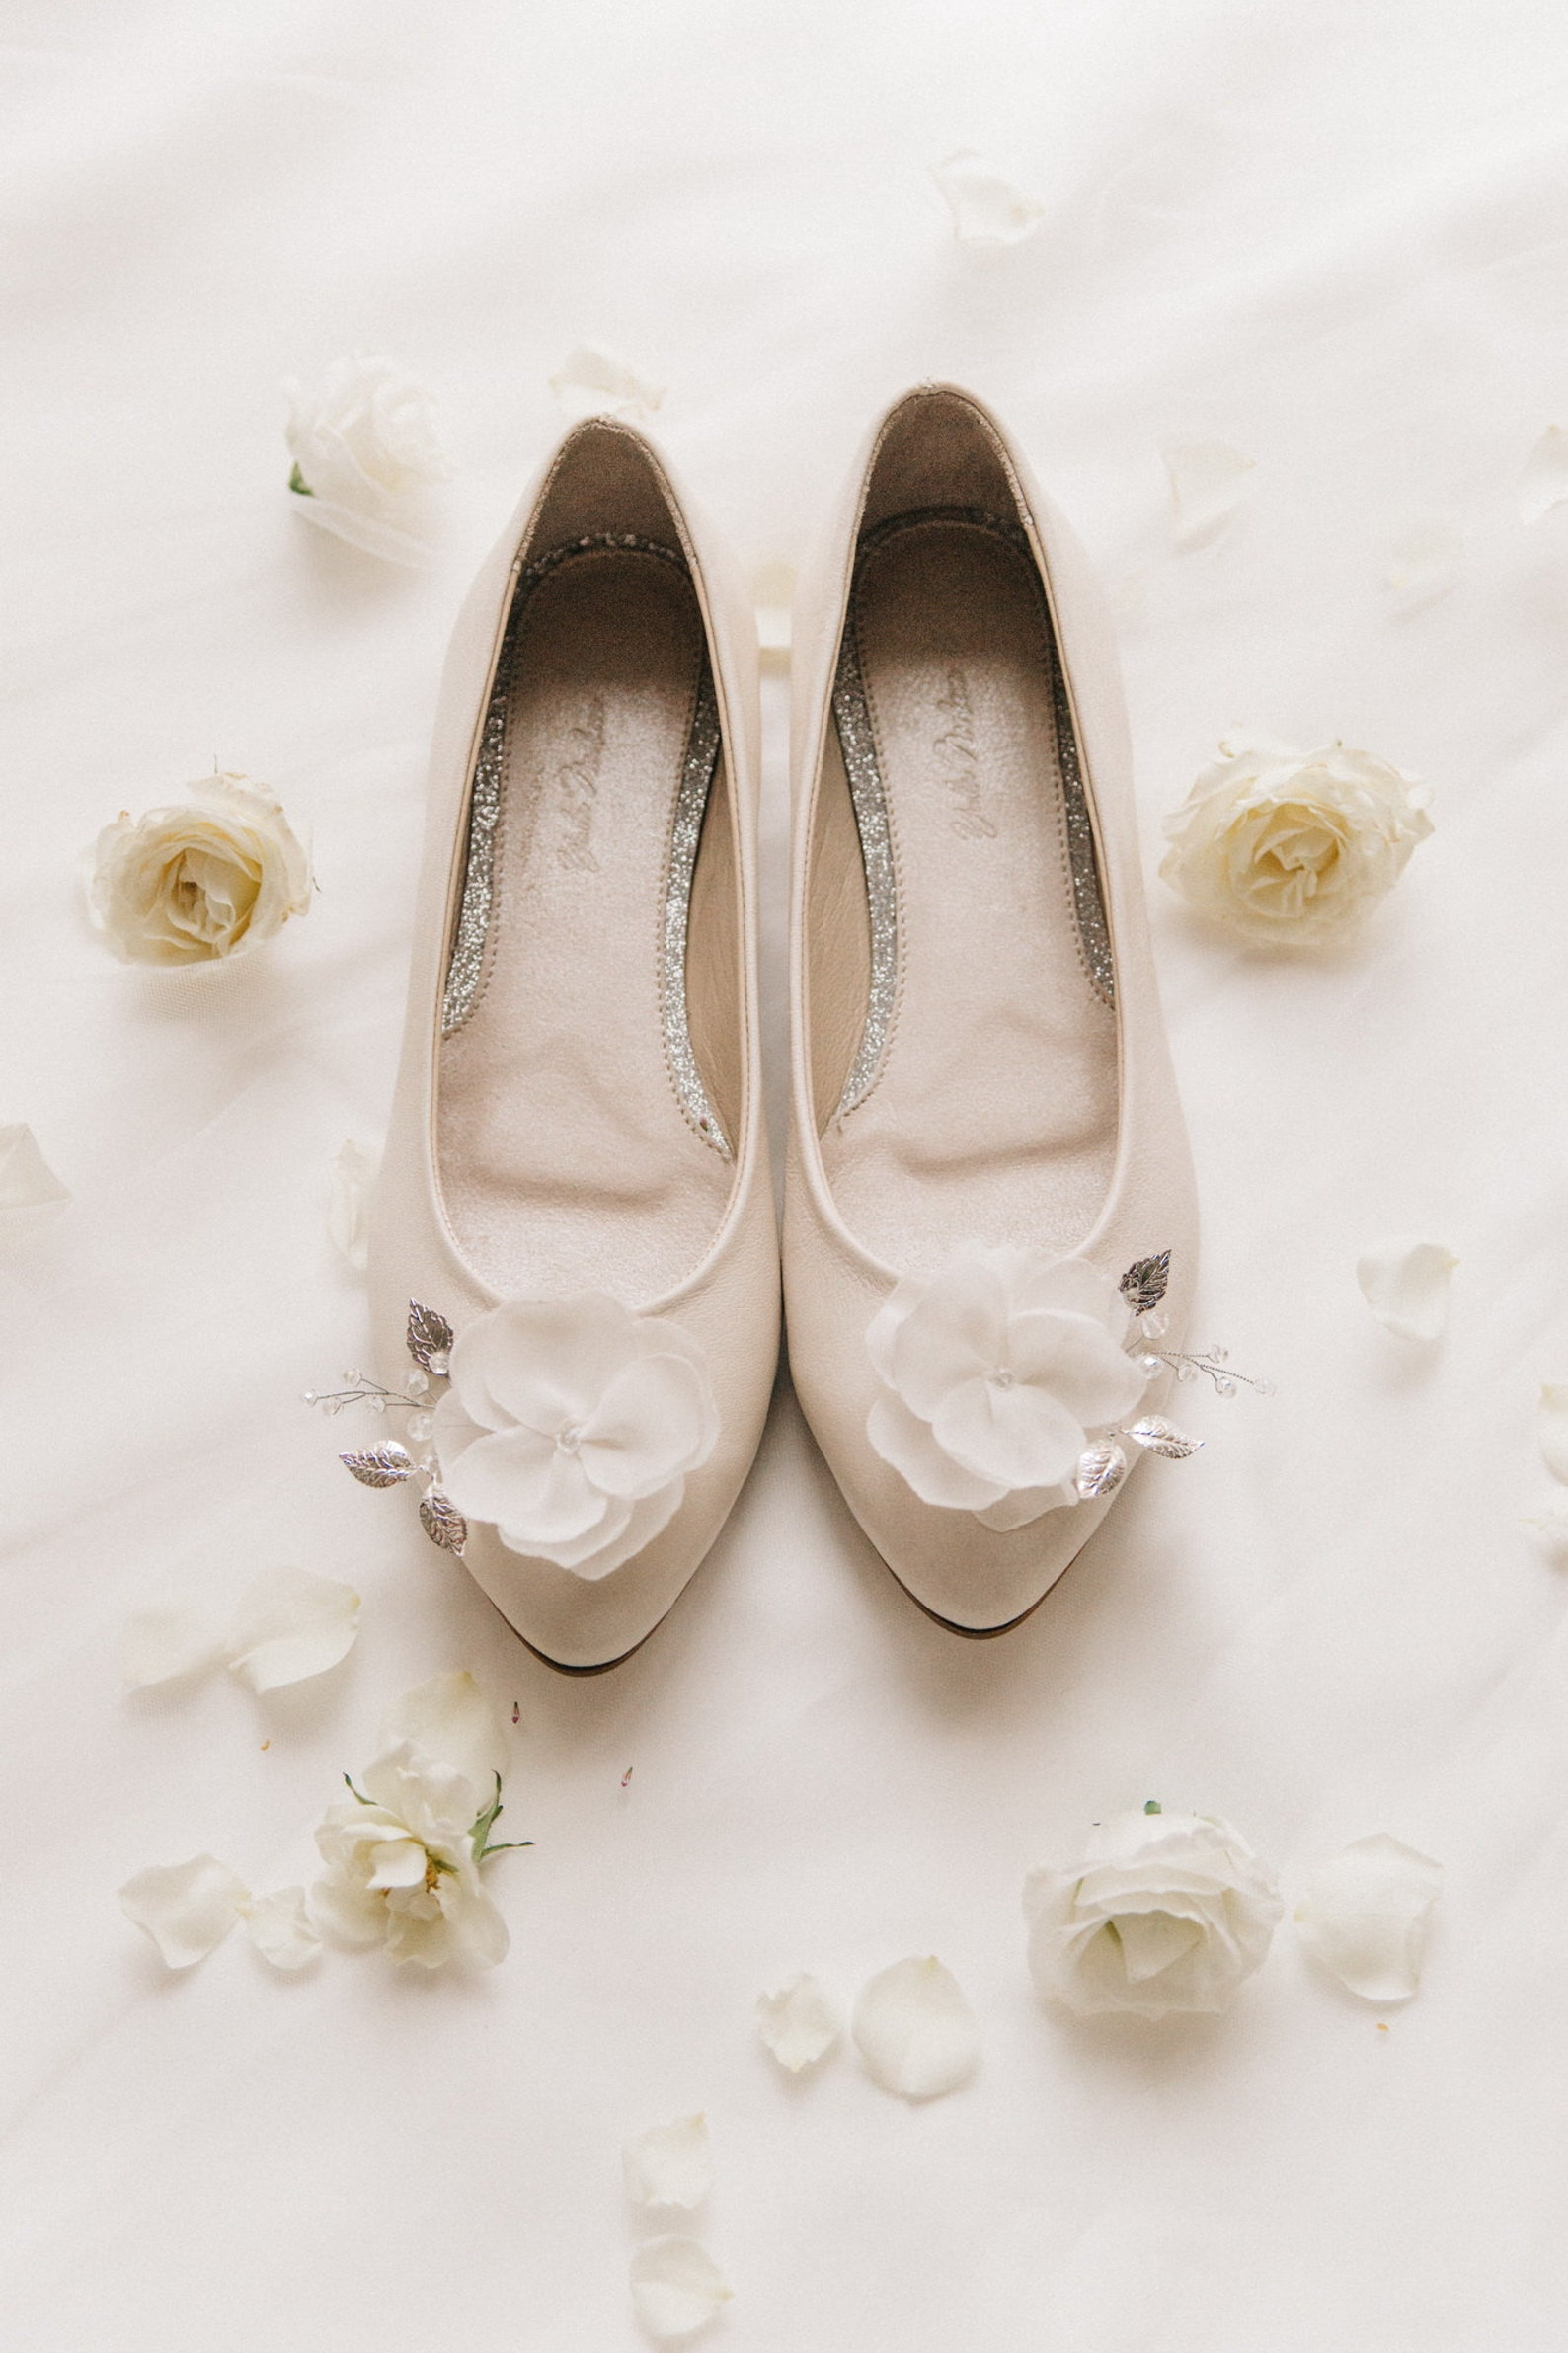 white wedding shoes, wedding shoes, bridal ballet flats, low wedding shoes, bridal flats, wedding flats, leather shoes, ballet f